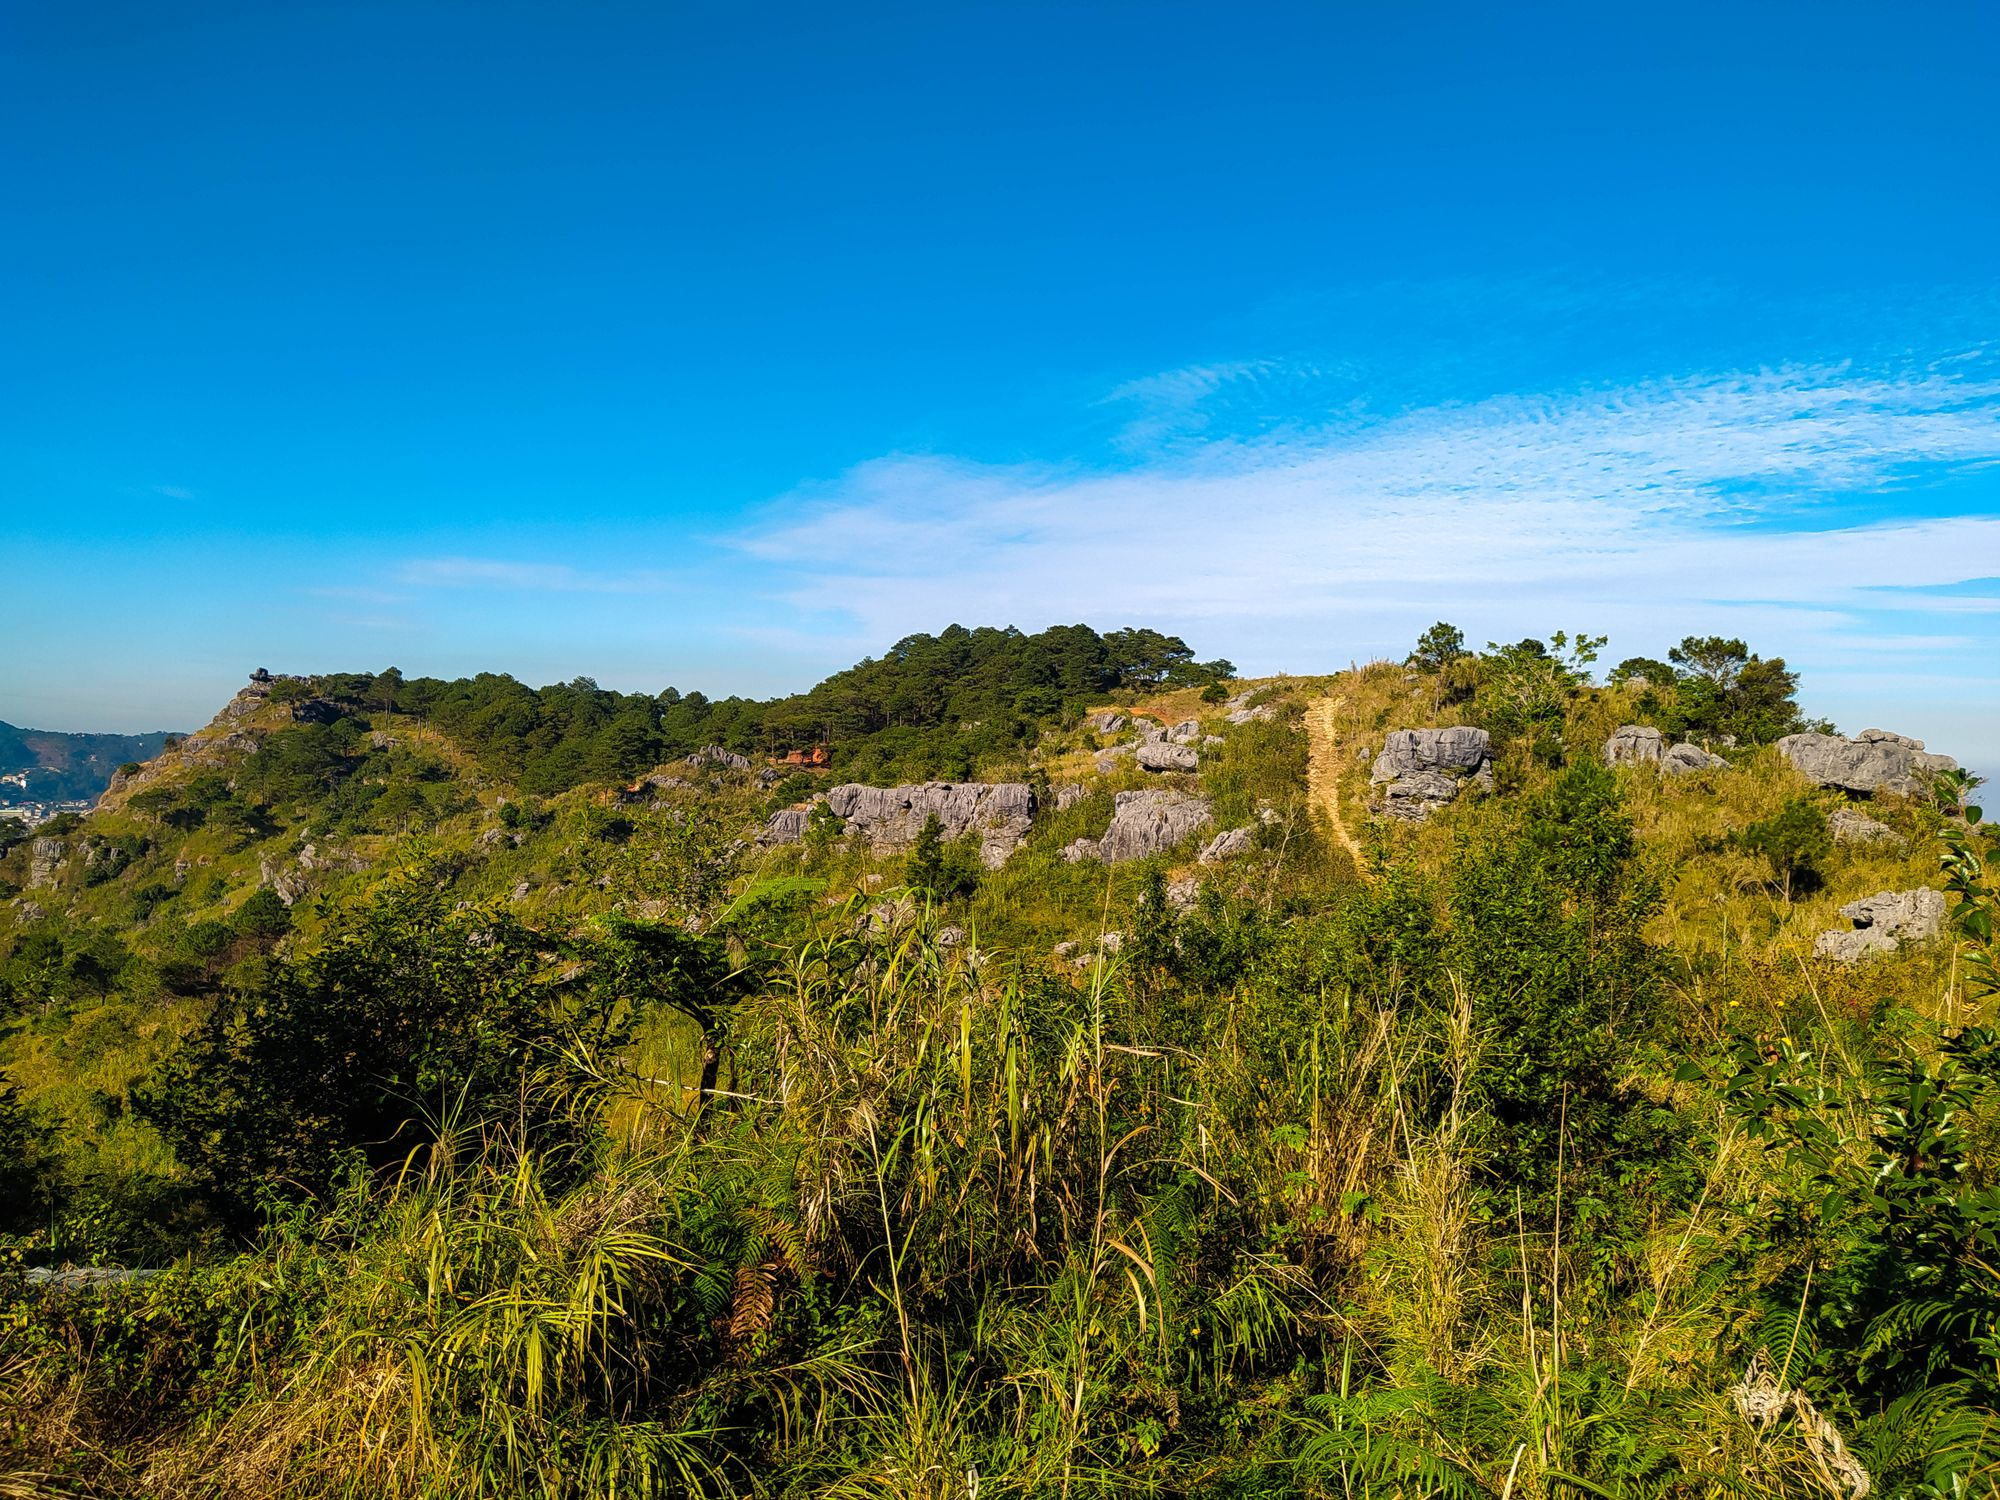 Mountain summit clad with vegetation and limestone rocks beneath a blue sky